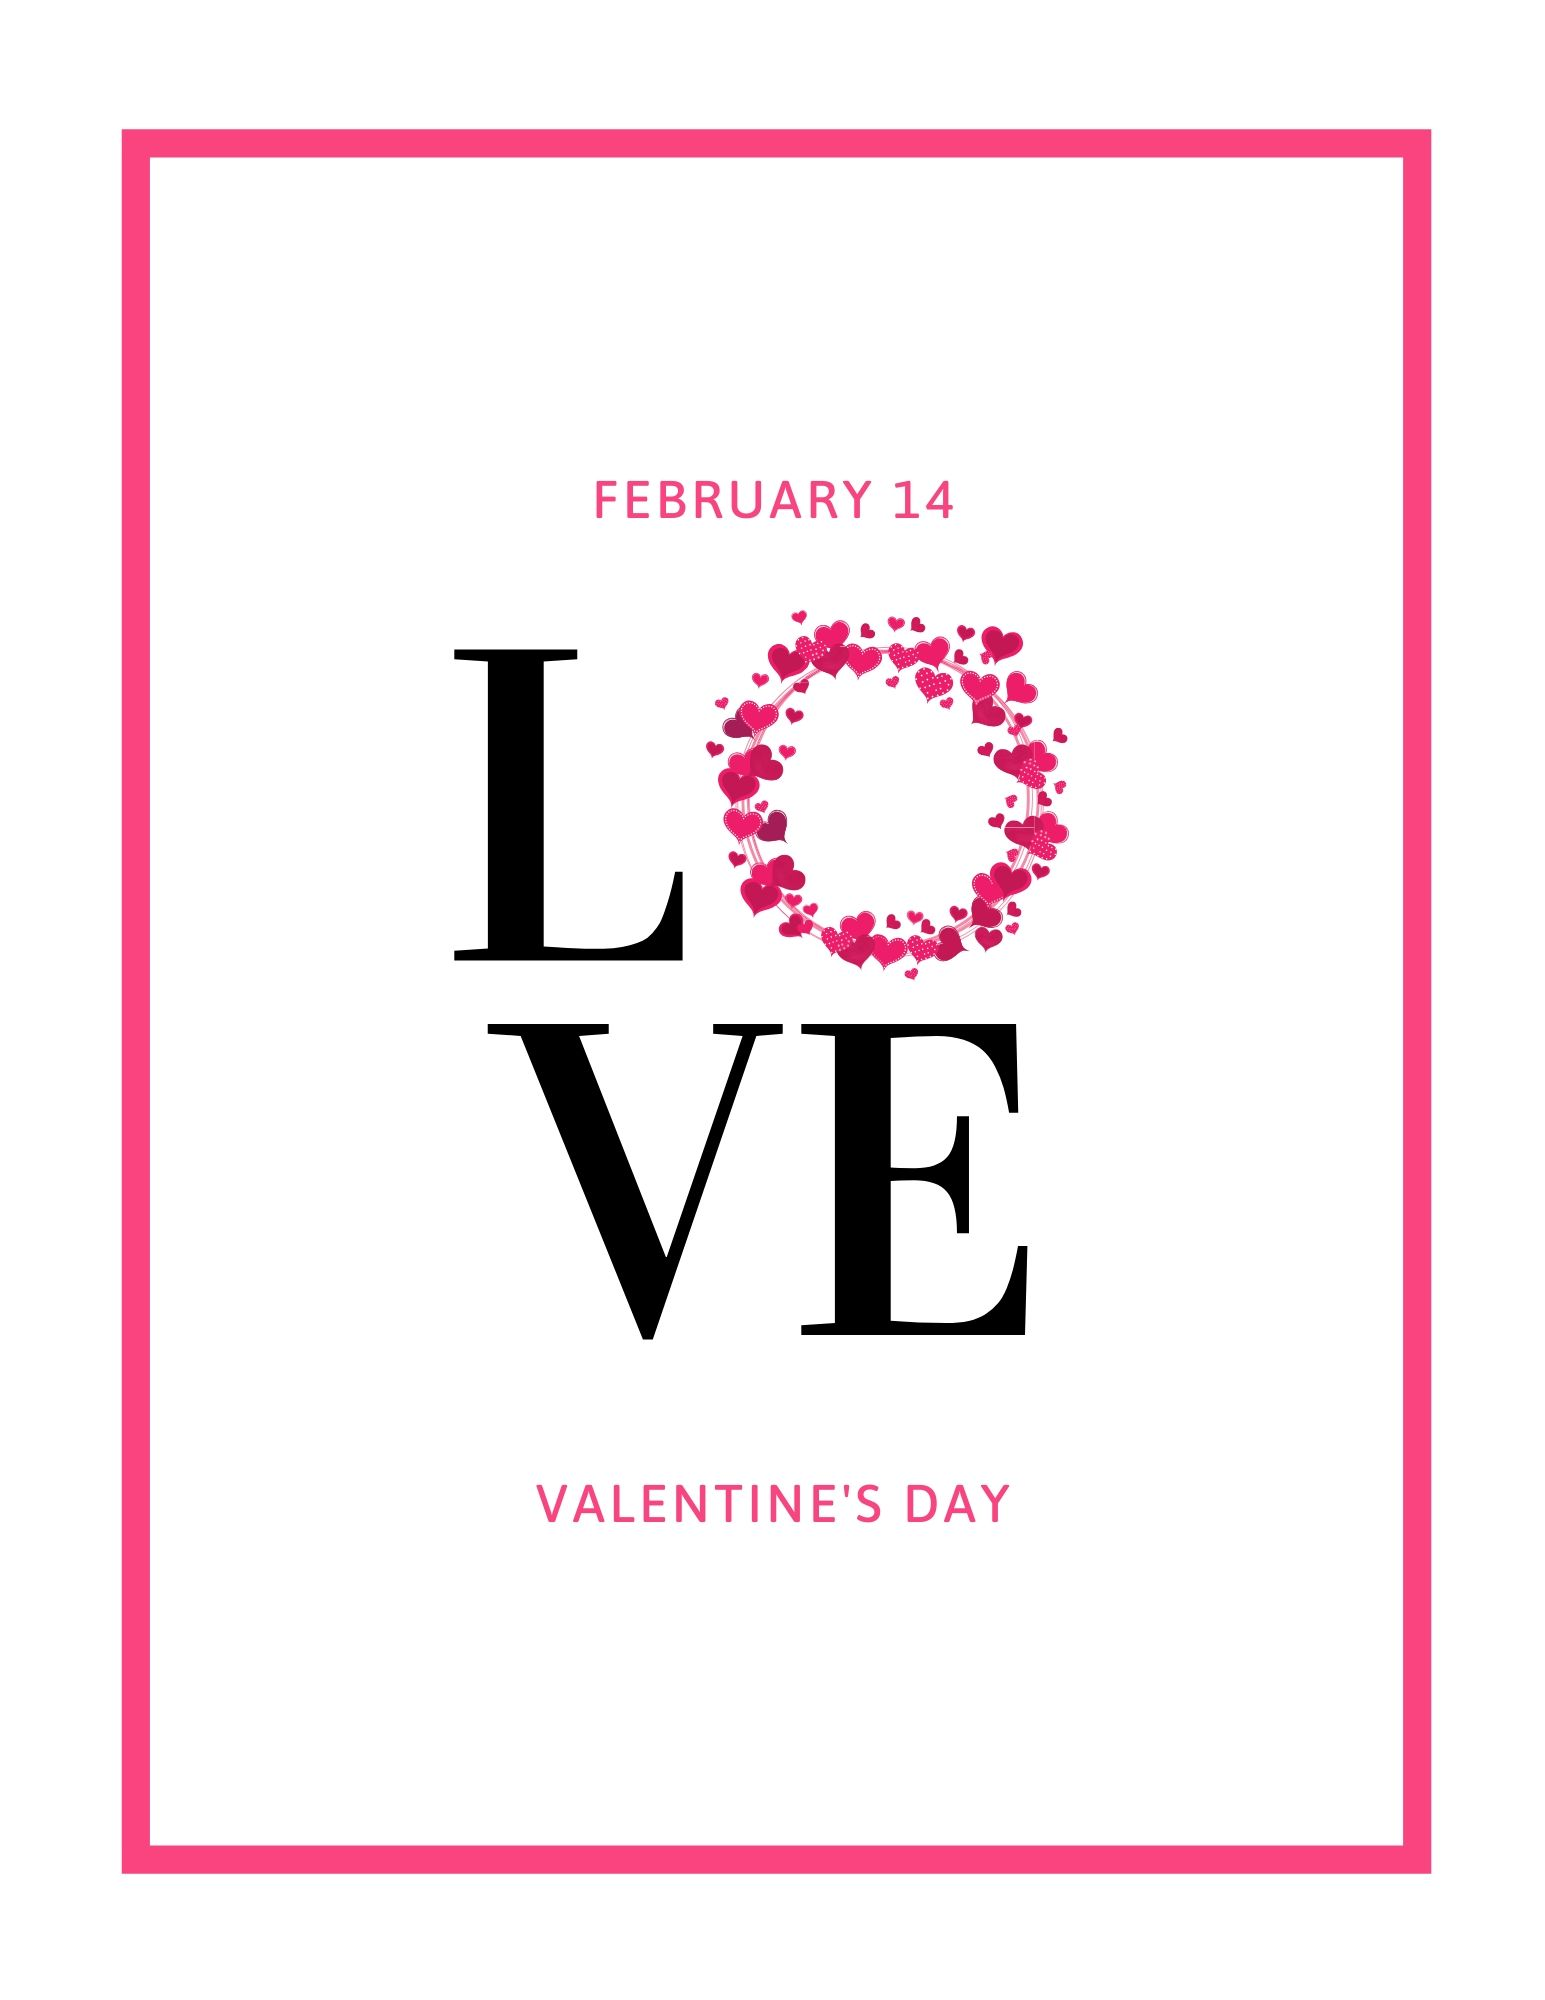 Valentines Day Free Printable Wall Art Love 1 #ValentinesDay #ValentineWallArt #DIY #WallArt #DIYDecor